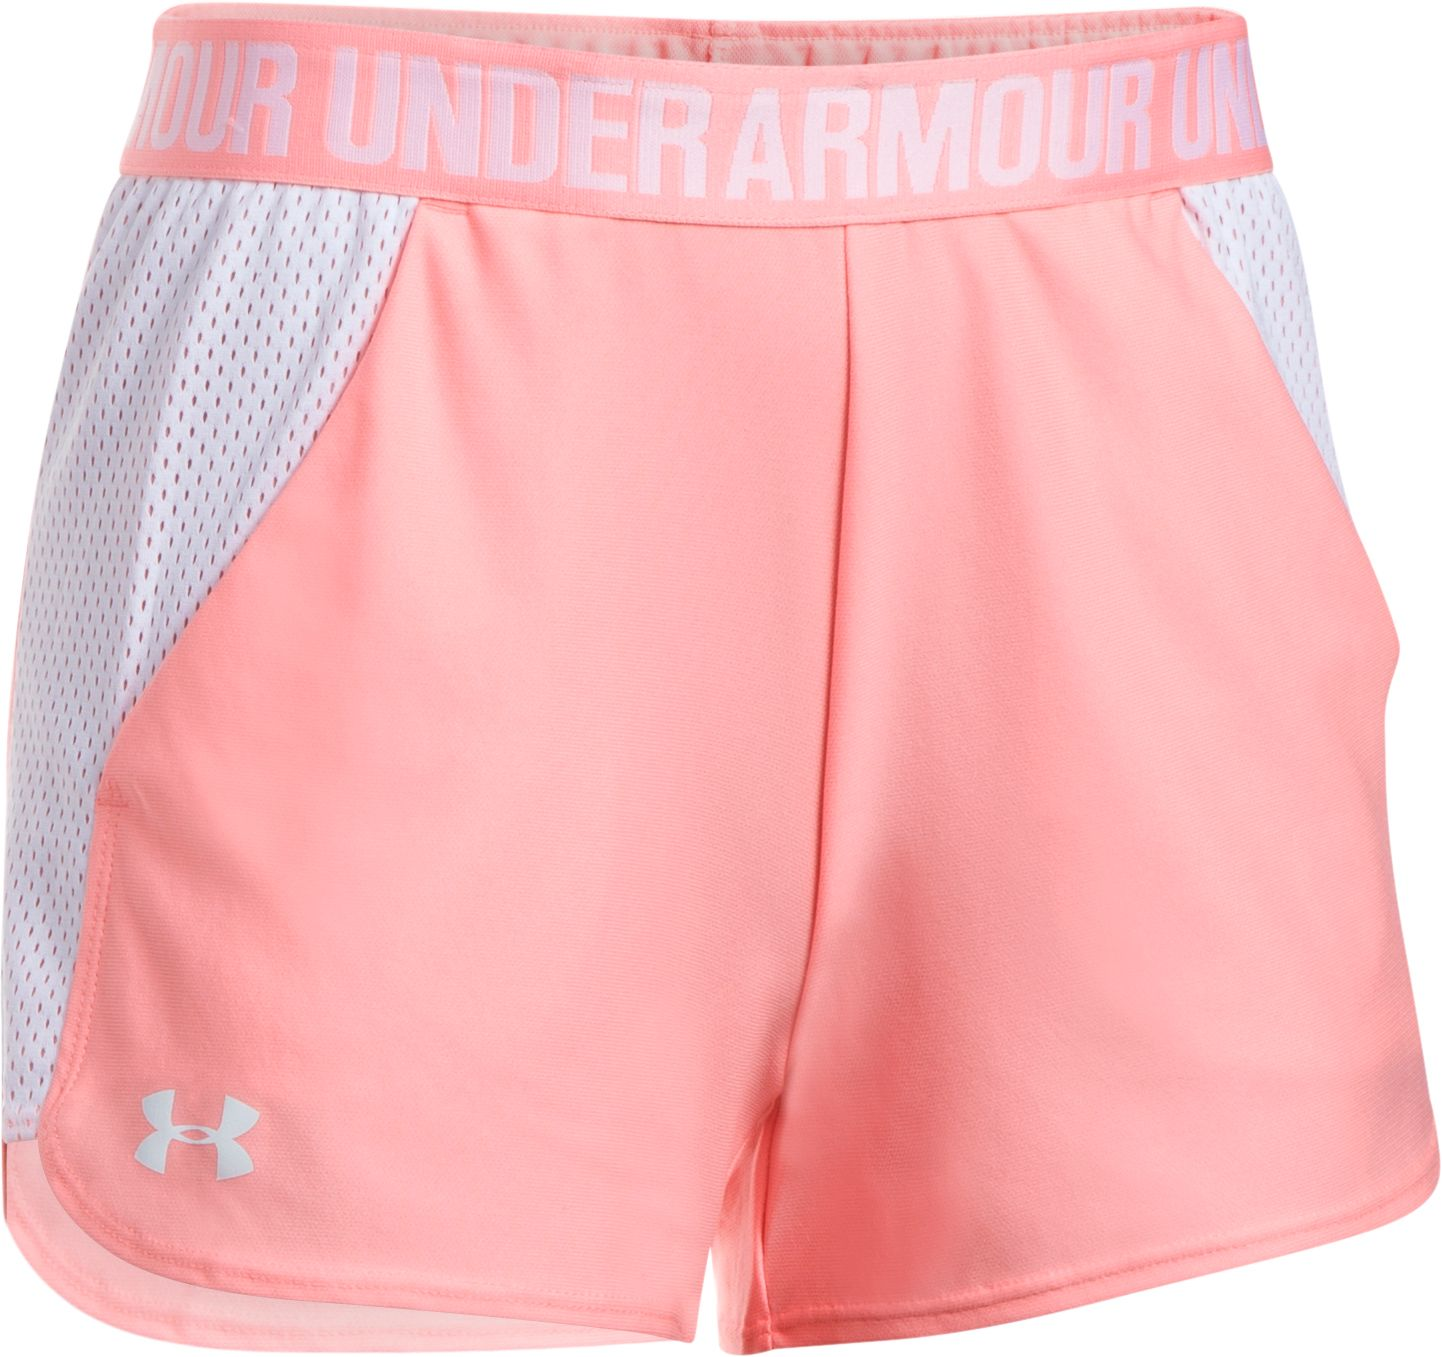 Under Armour Women's Play Up Mesh Inset Shorts by Under Armour